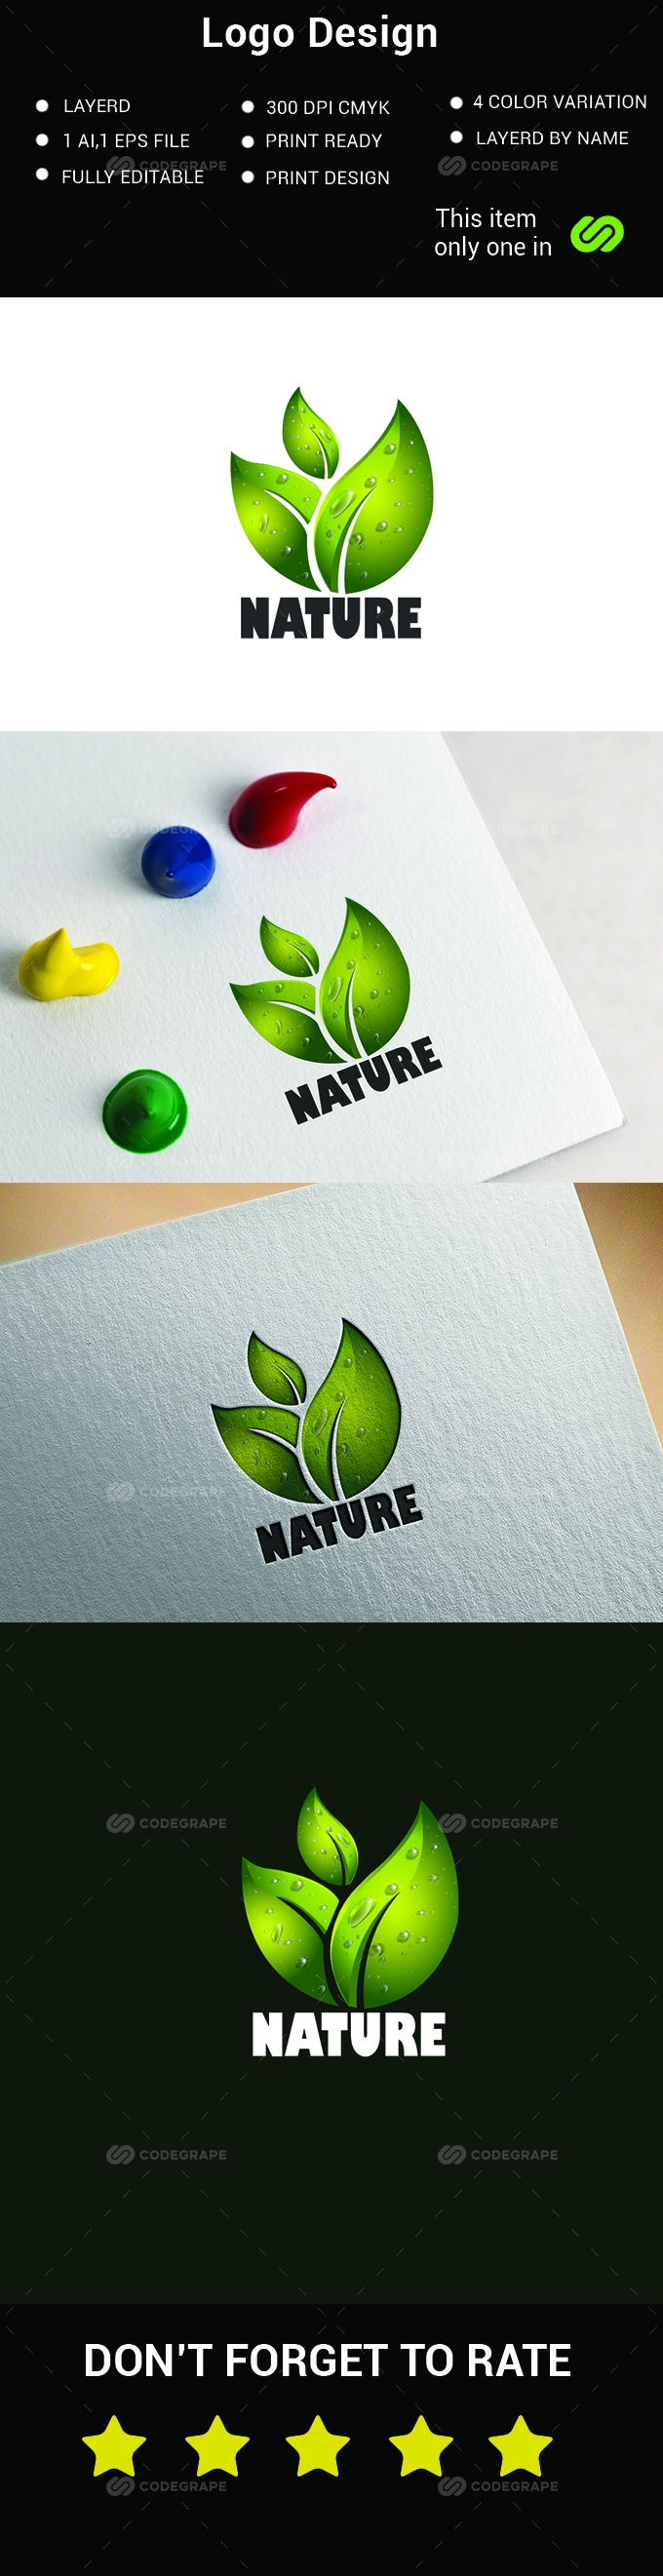 Nature Logo Design